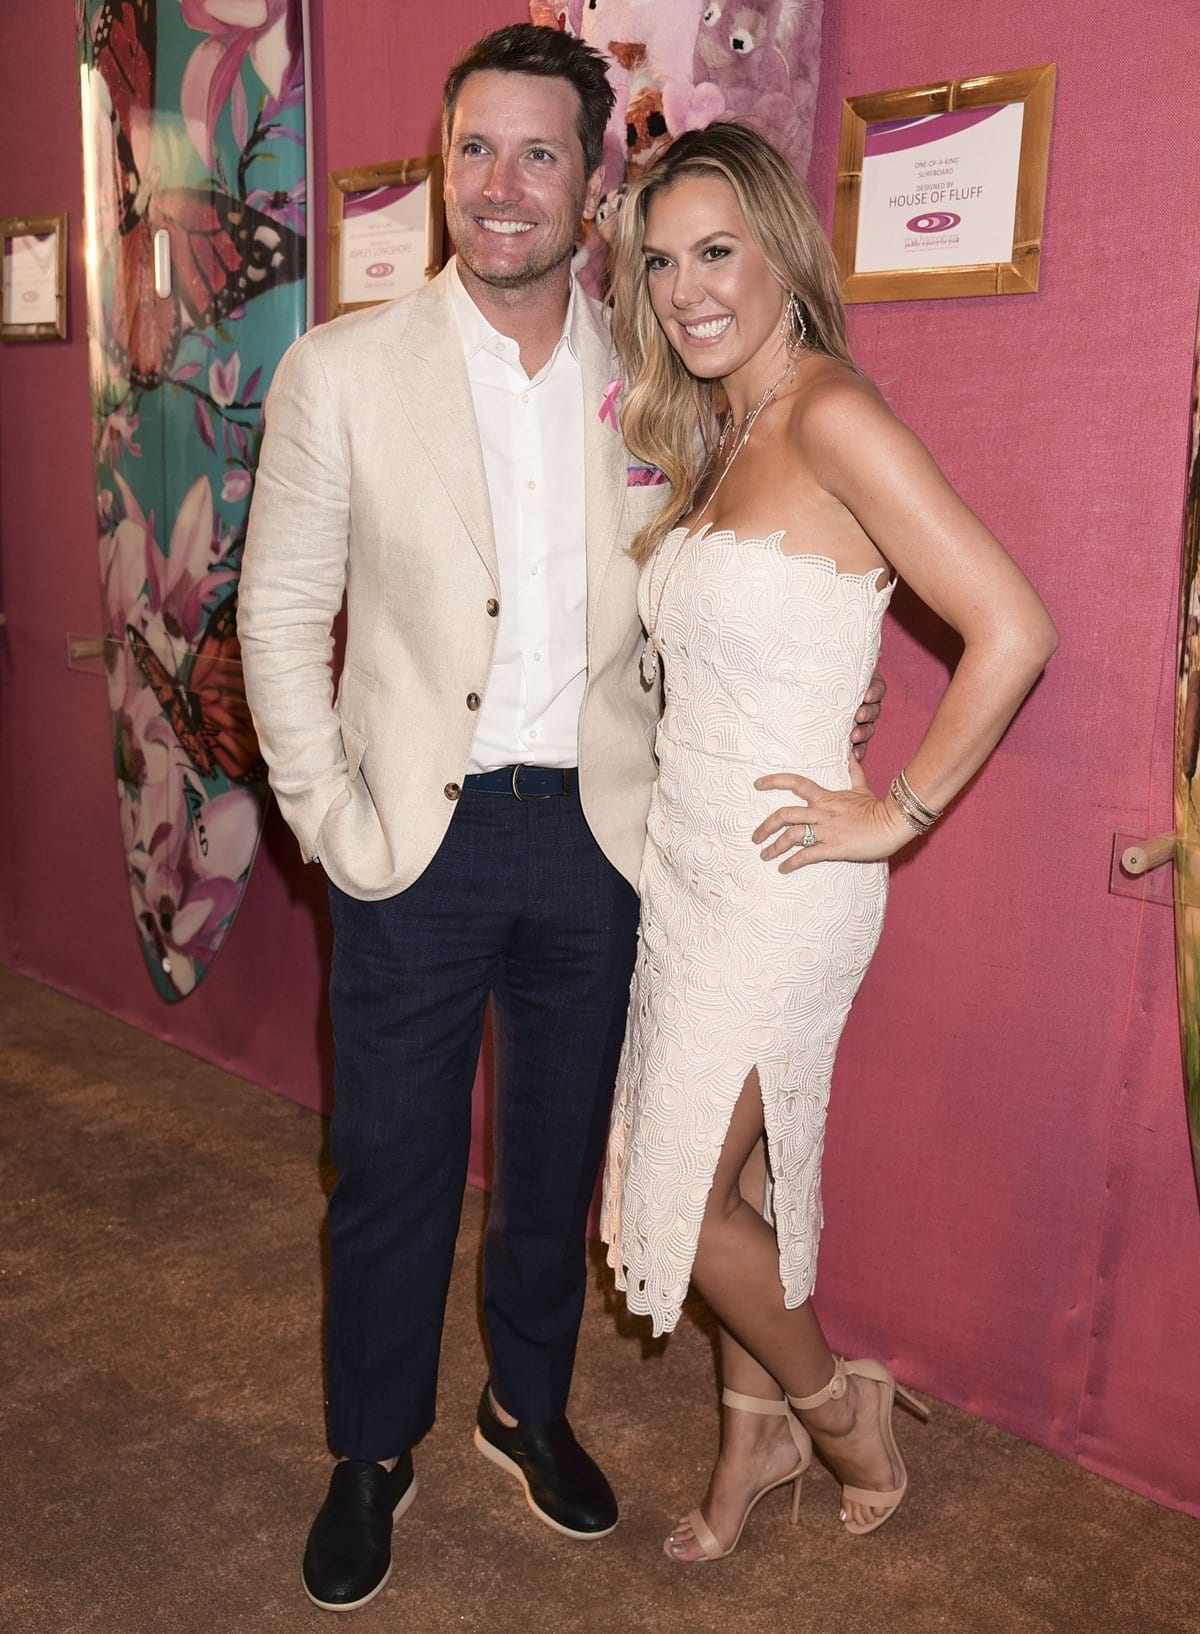 Kendra Scott with her second husband, Matt Davis, whom she married in 2014 and divorced in 2020